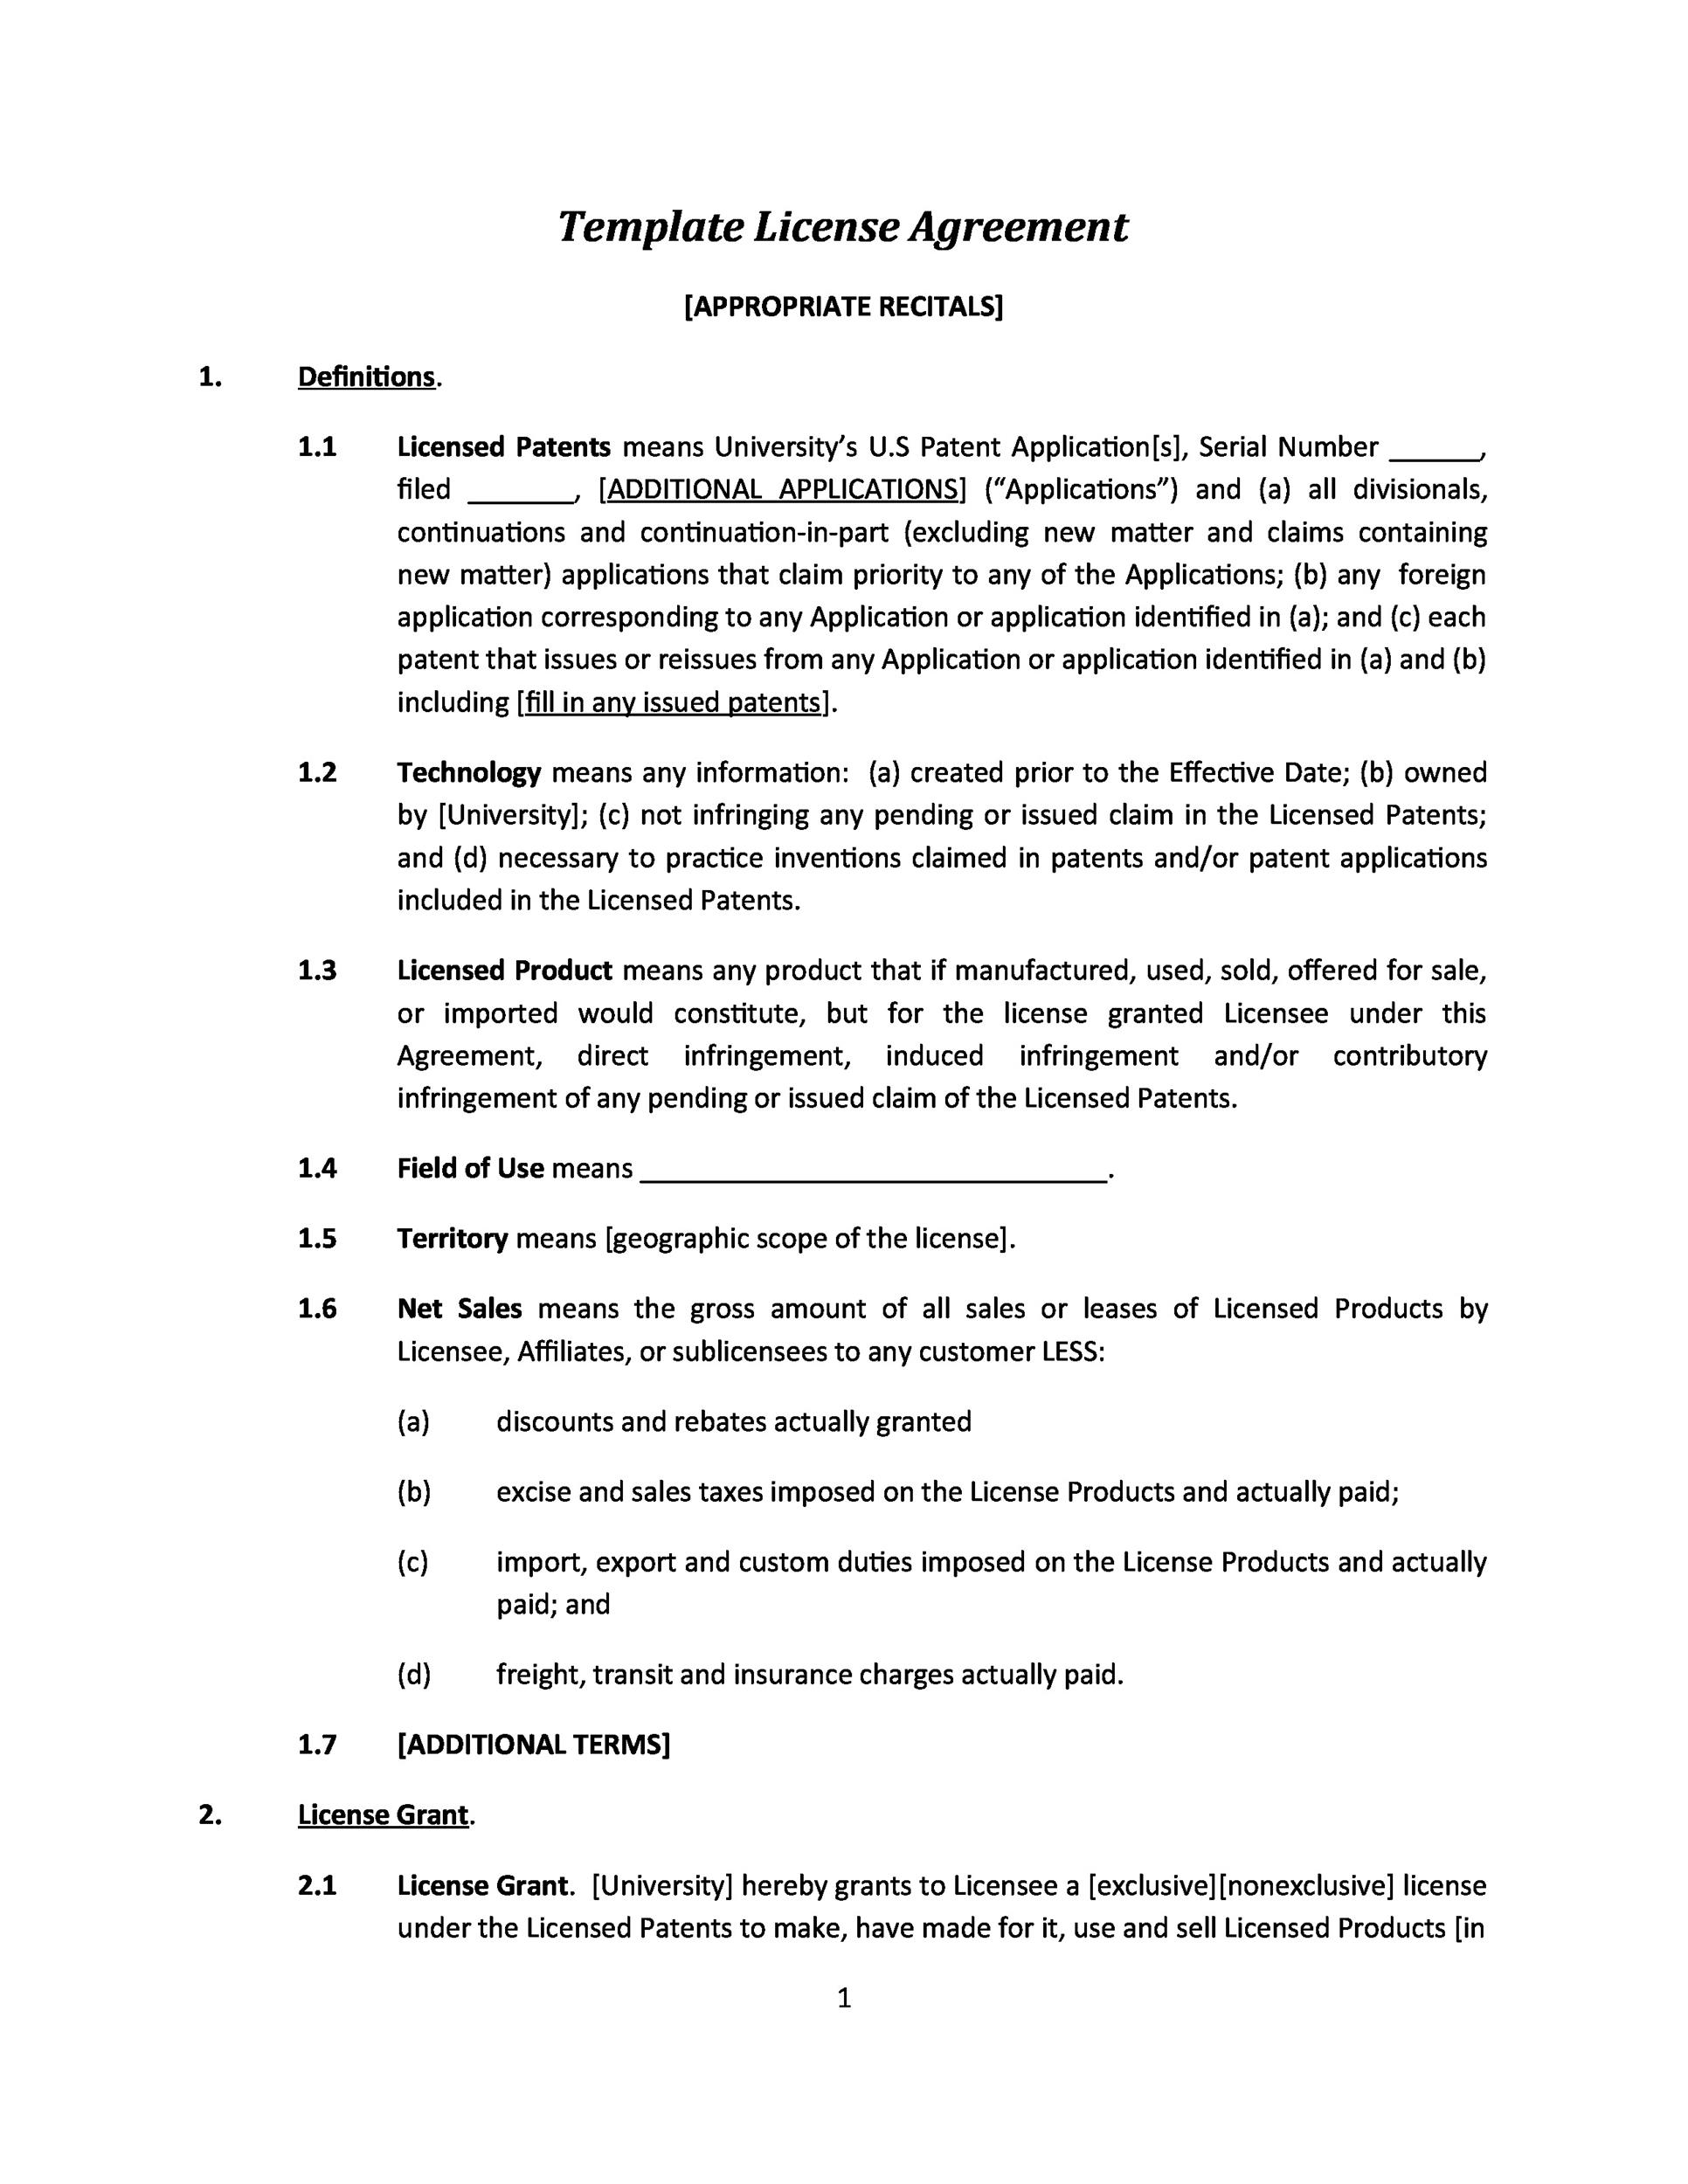 Form of intellectual property license agreement. 50 Professional License Agreement Templates Á… Templatelab